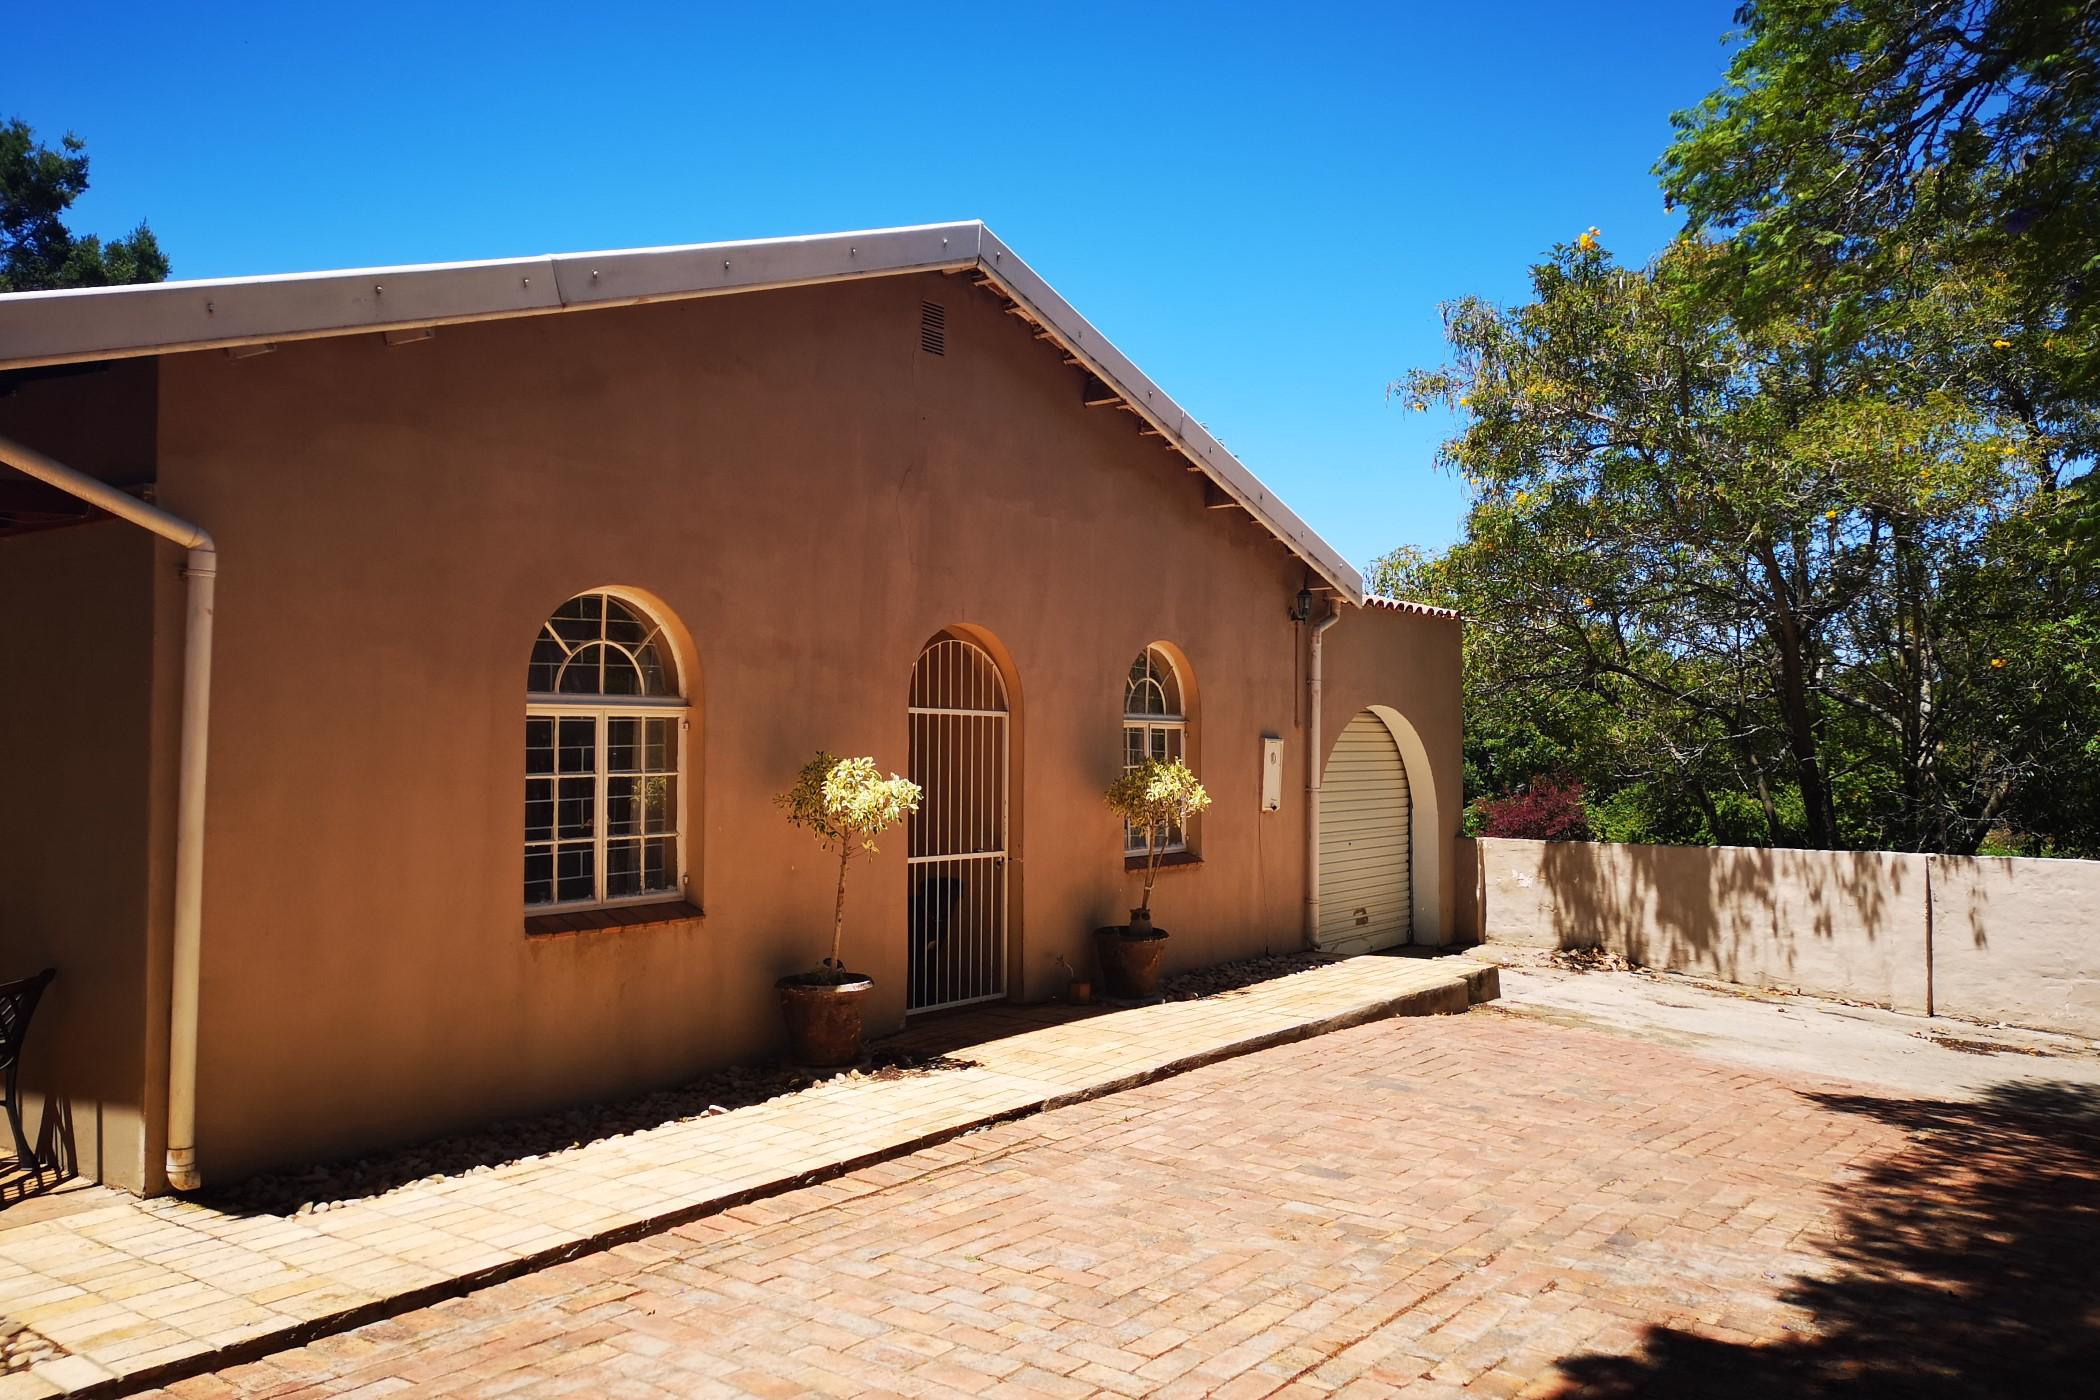 https://listing.pamgolding.co.za/images/properties/201905/257418/H/257418_H_39.jpg